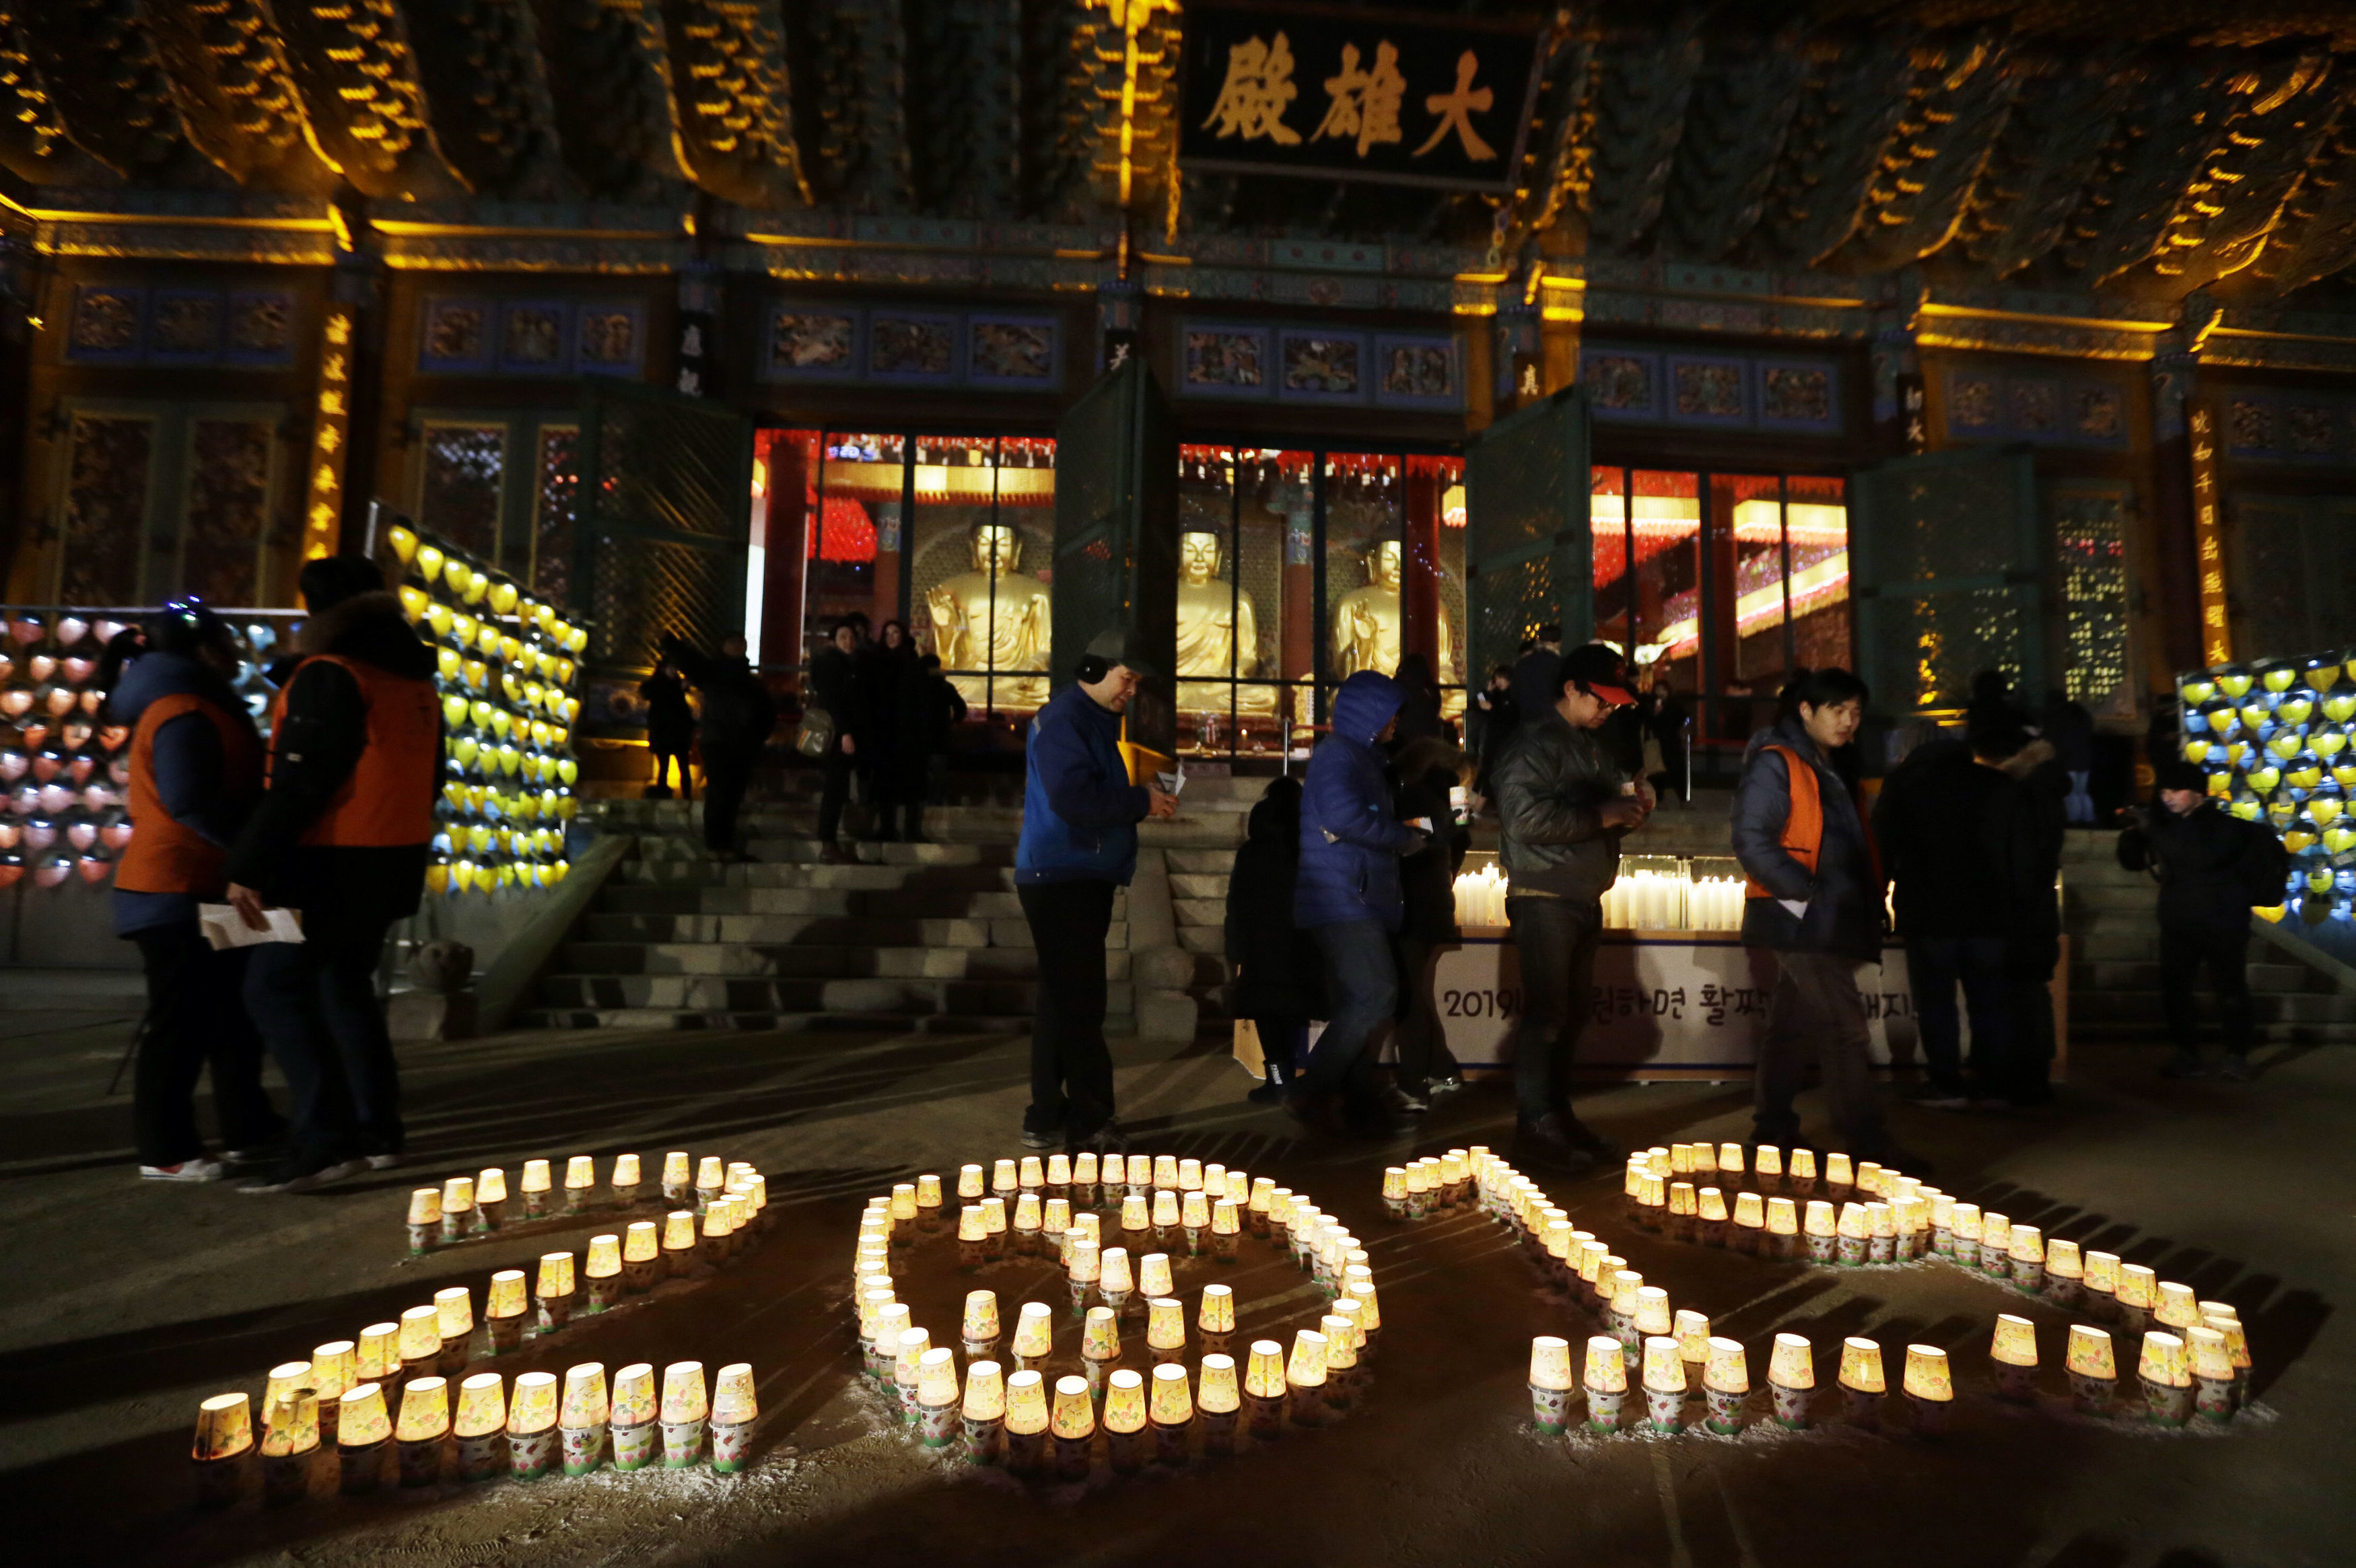 Buddhists light candles during New Year celebrations at Jogyesa Buddhist temple in Seoul